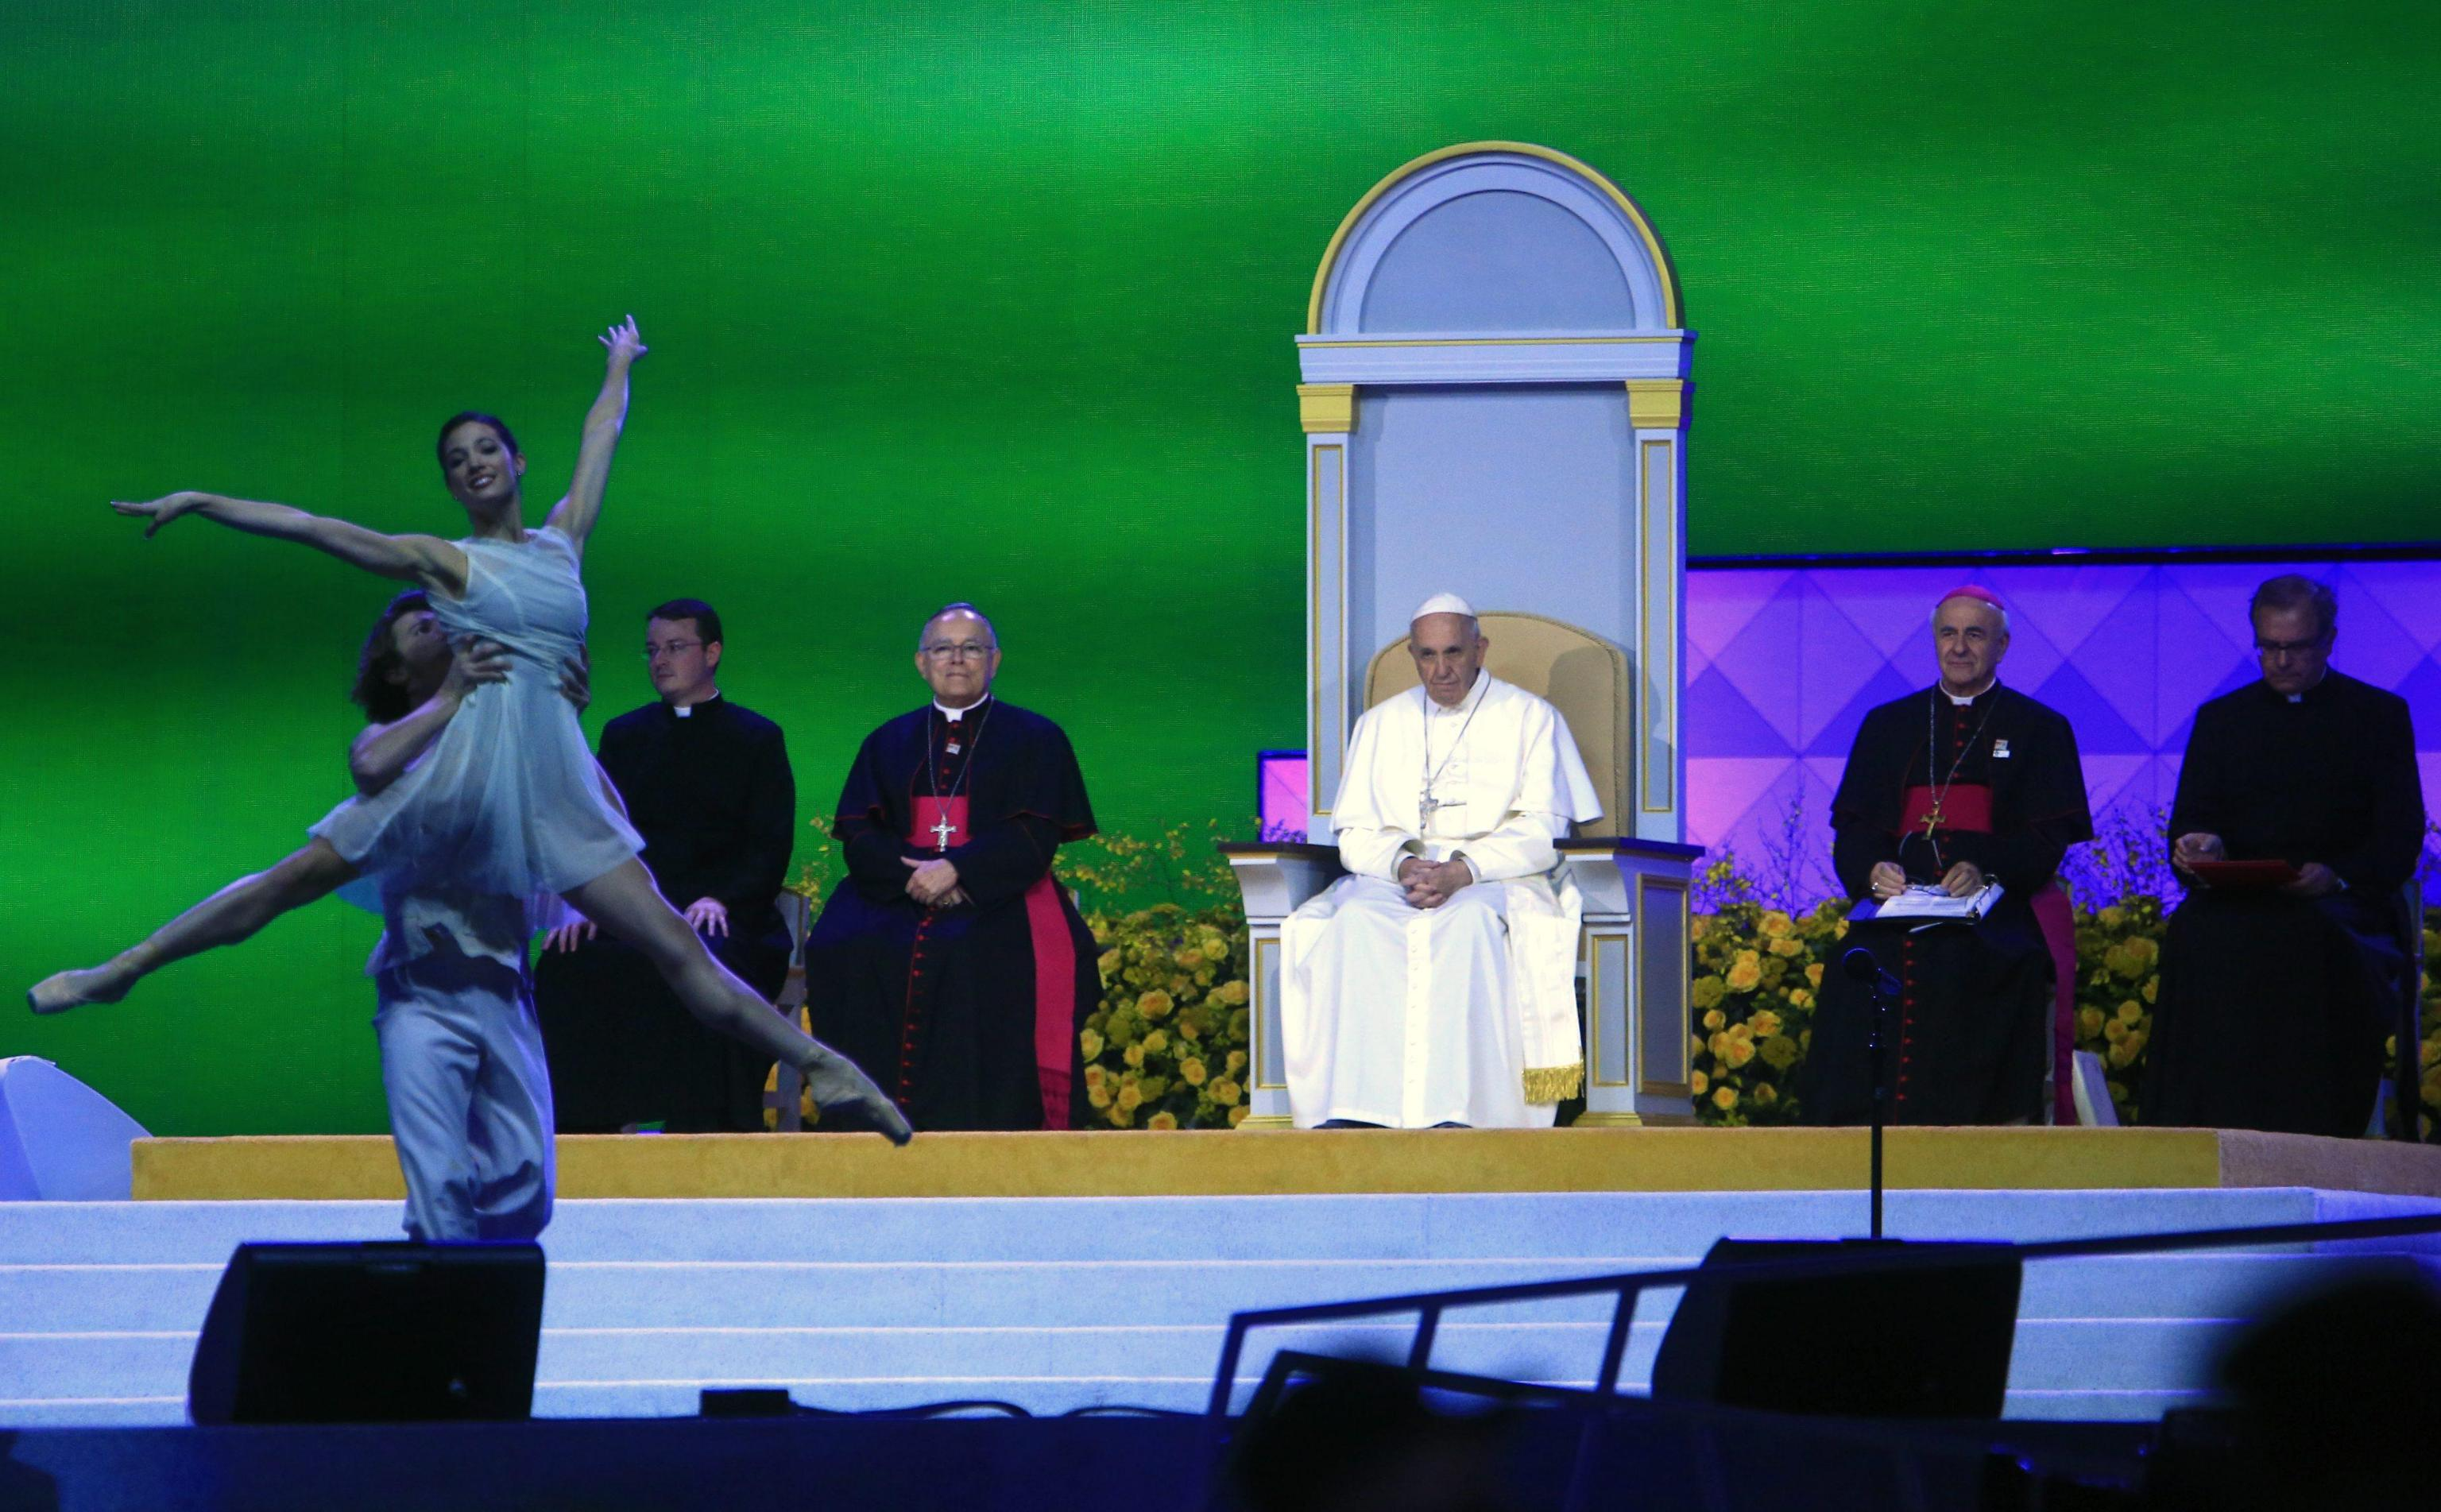 Pope Francis watches a performance as he attends the Festival of Families in Philadelphia